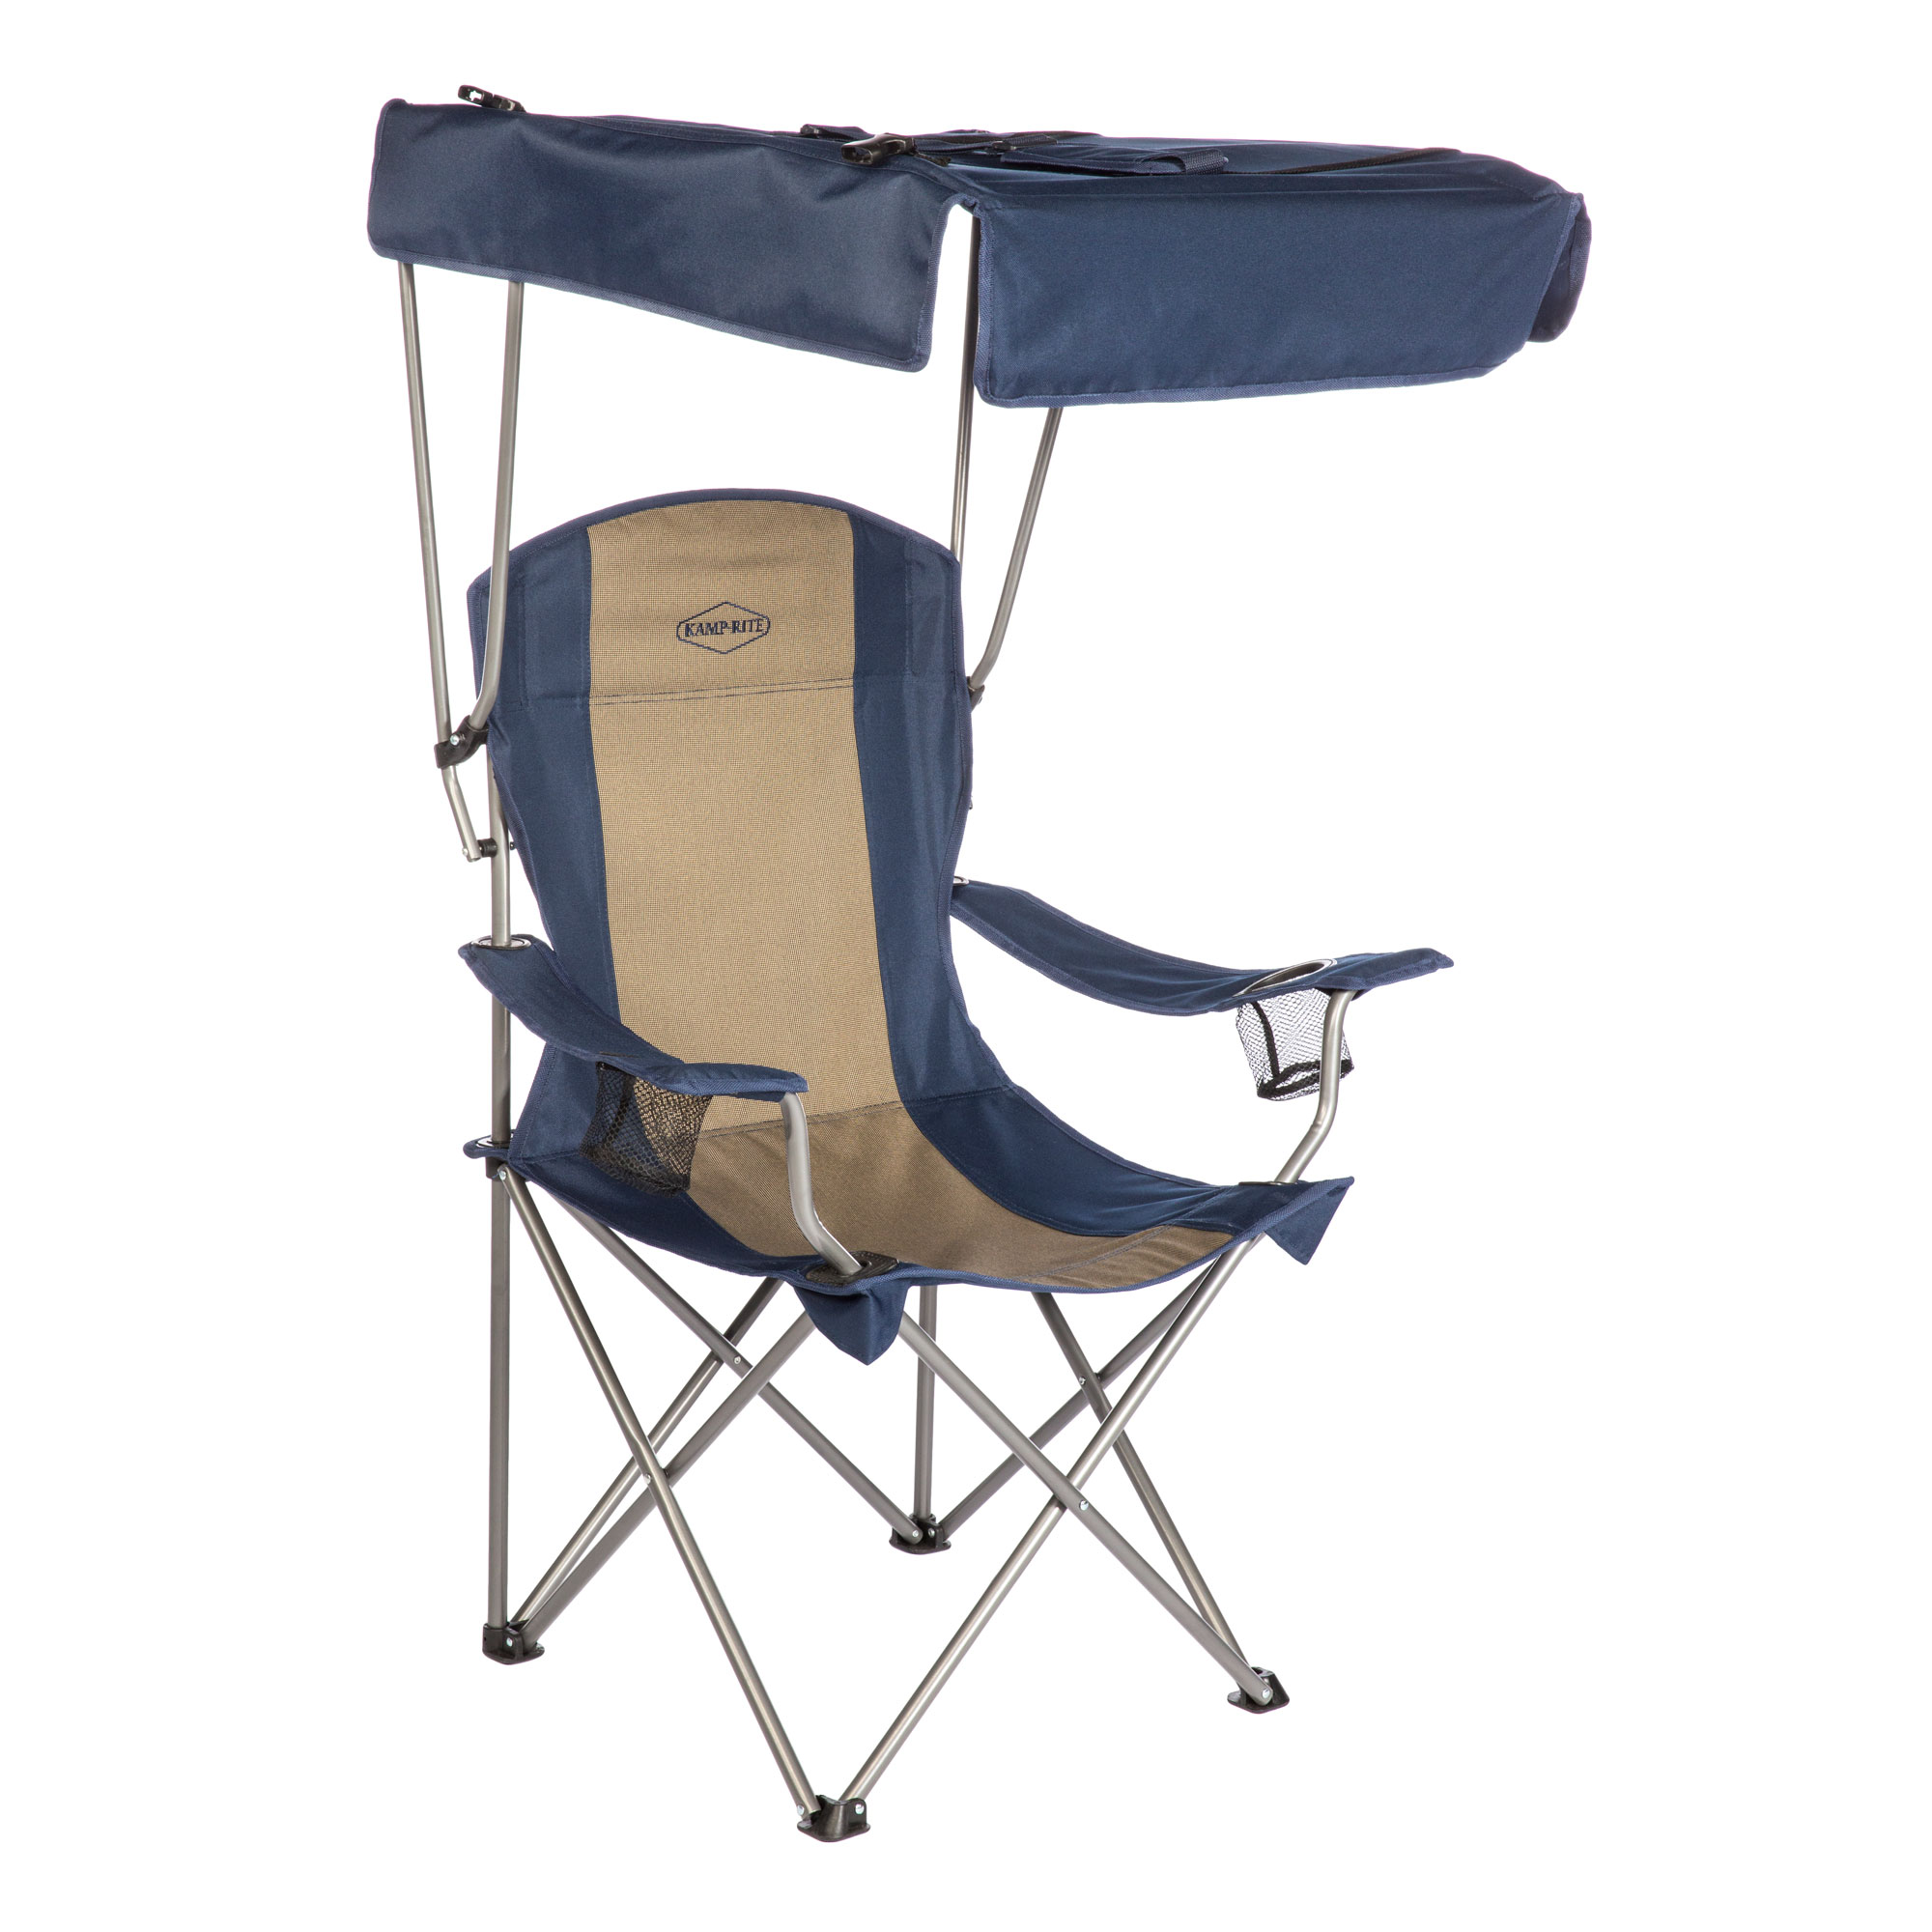 Kamp Rite Cc463 Outdoor Tailgating Camping Sun Shade Canopy Folding Lawn Chair